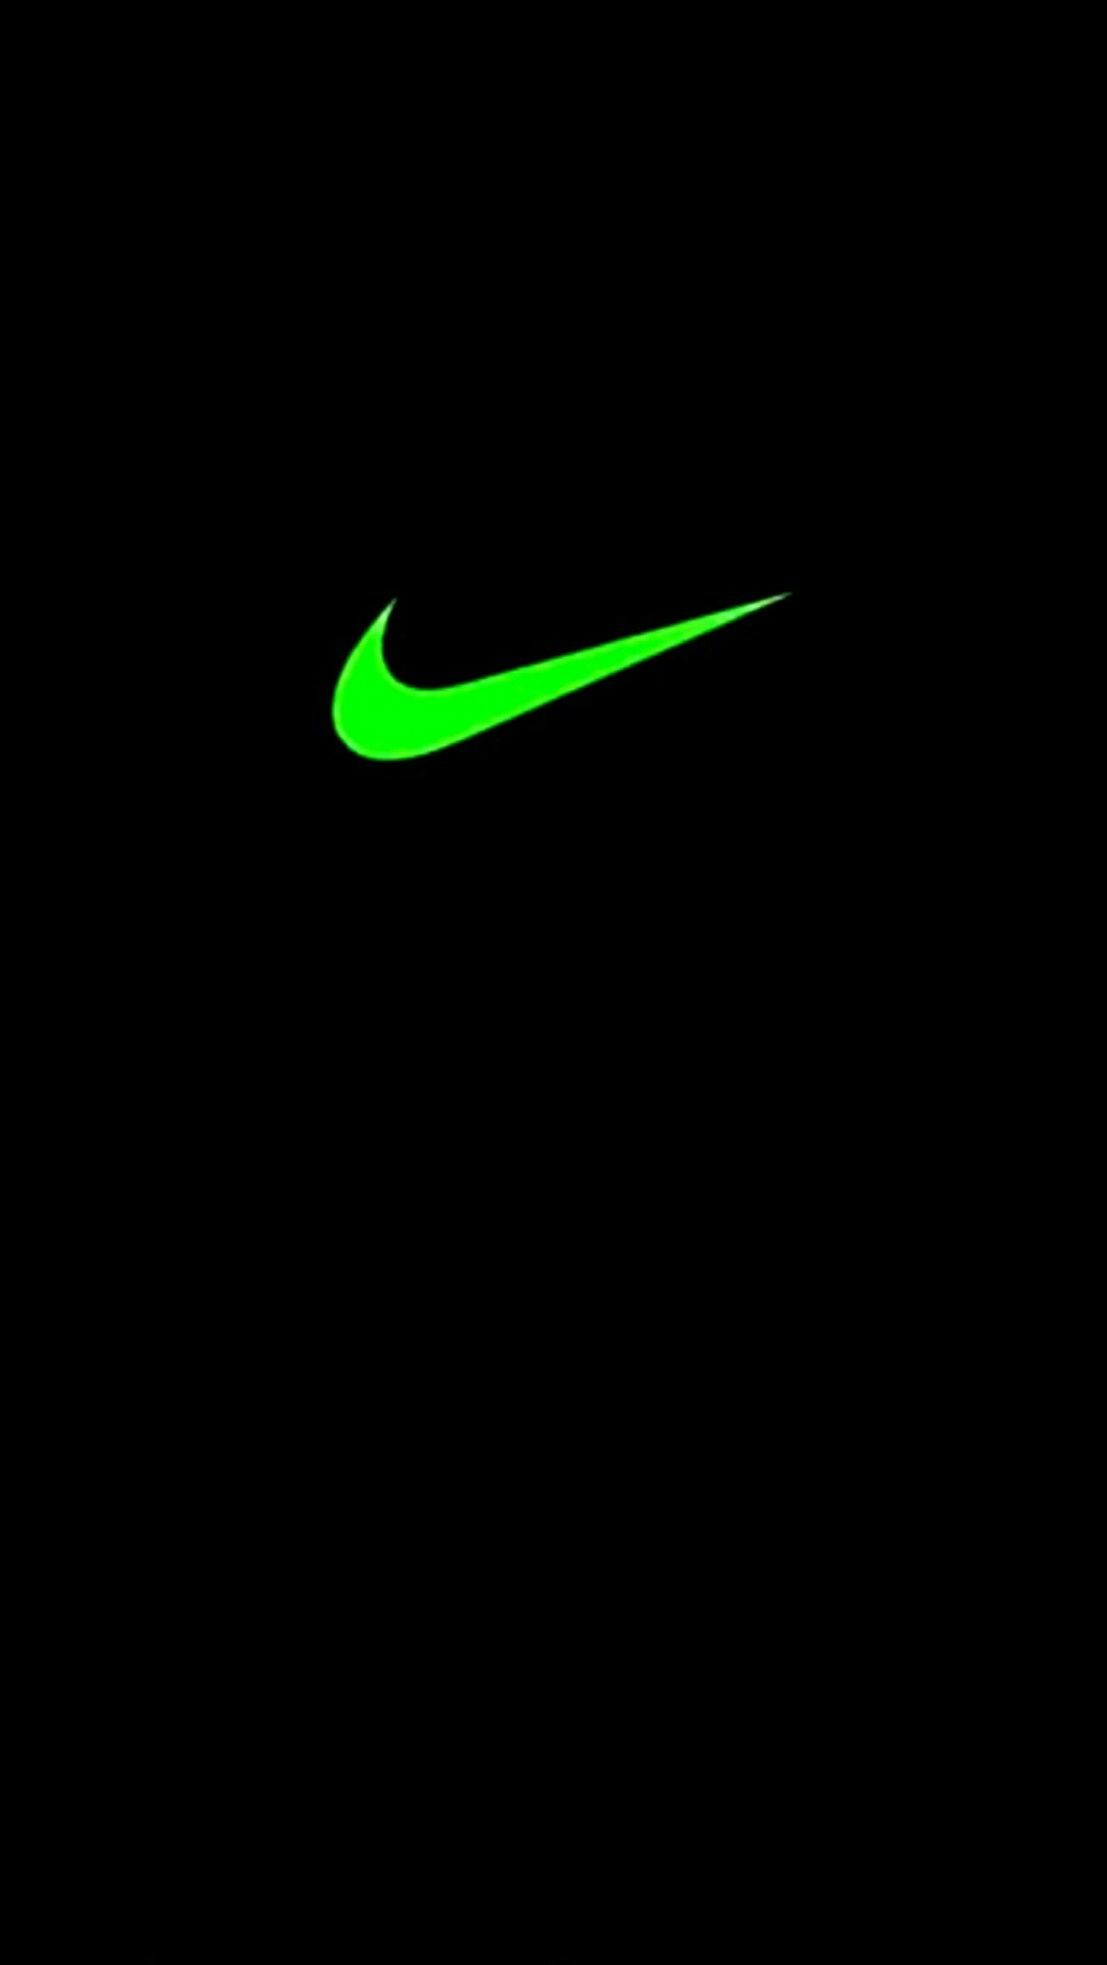 Nike Sign Wallpaper 67 Images